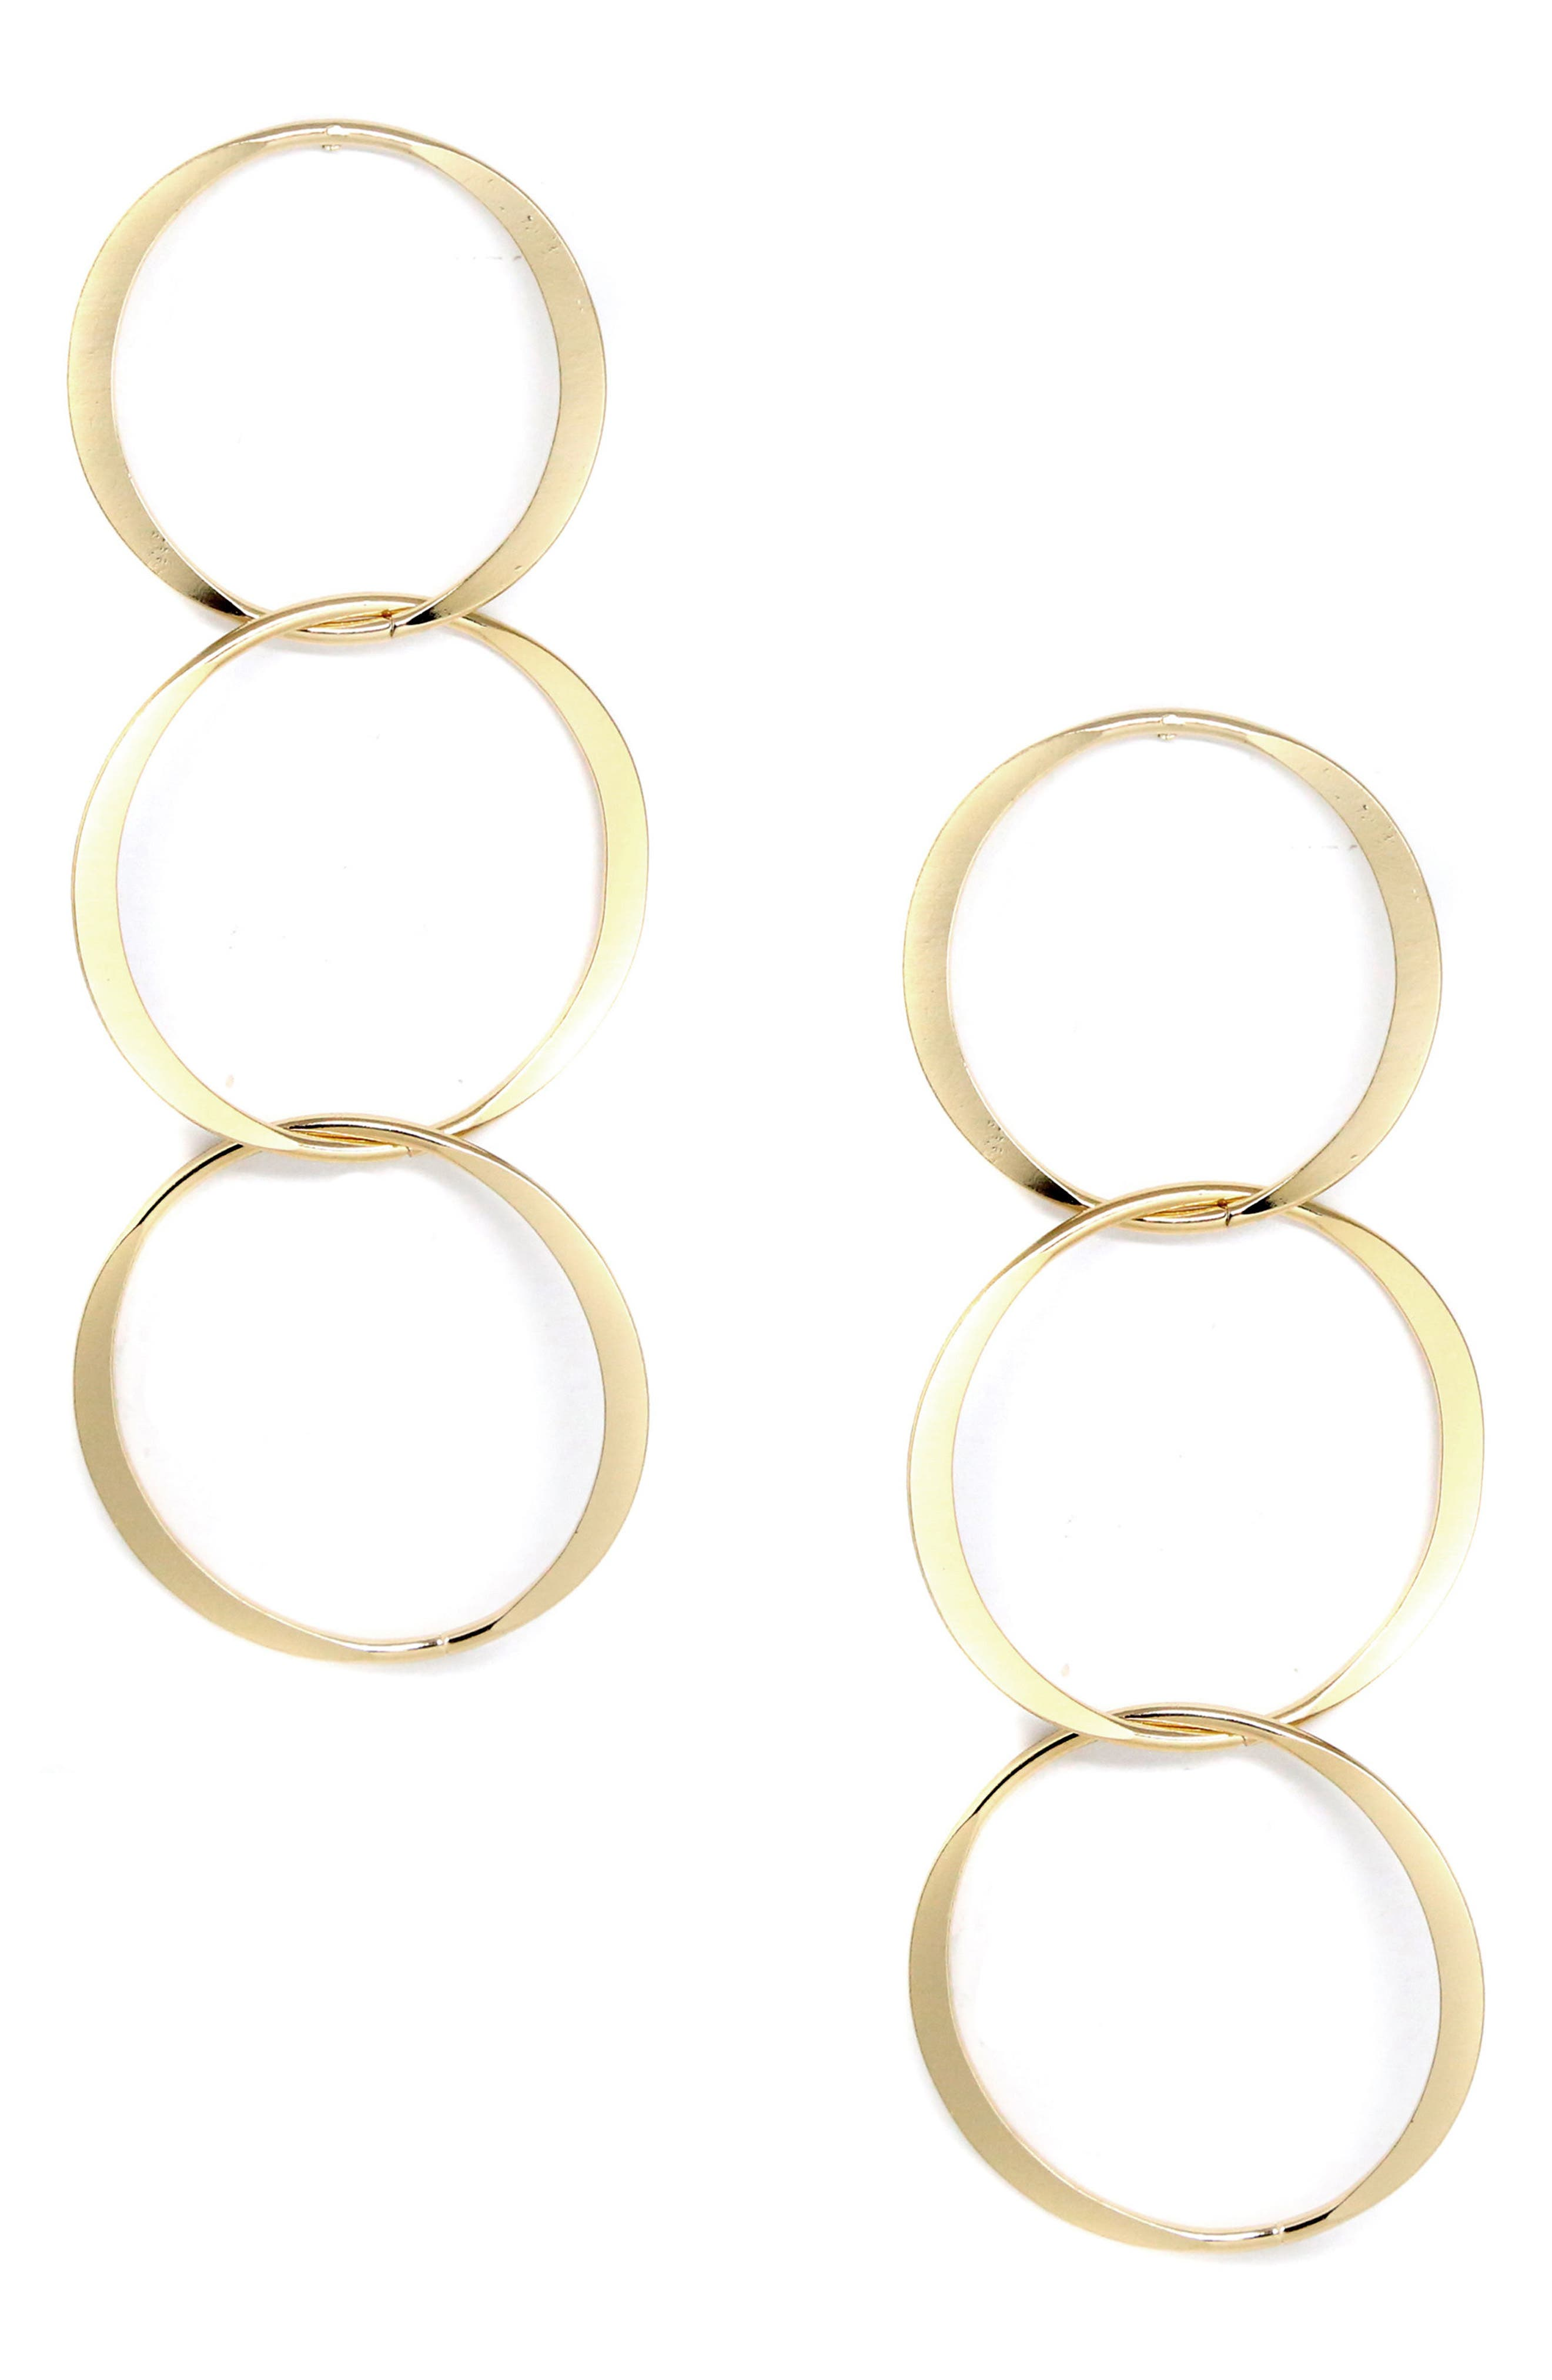 Triple Gold Hoop Earrings,                             Main thumbnail 1, color,                             710